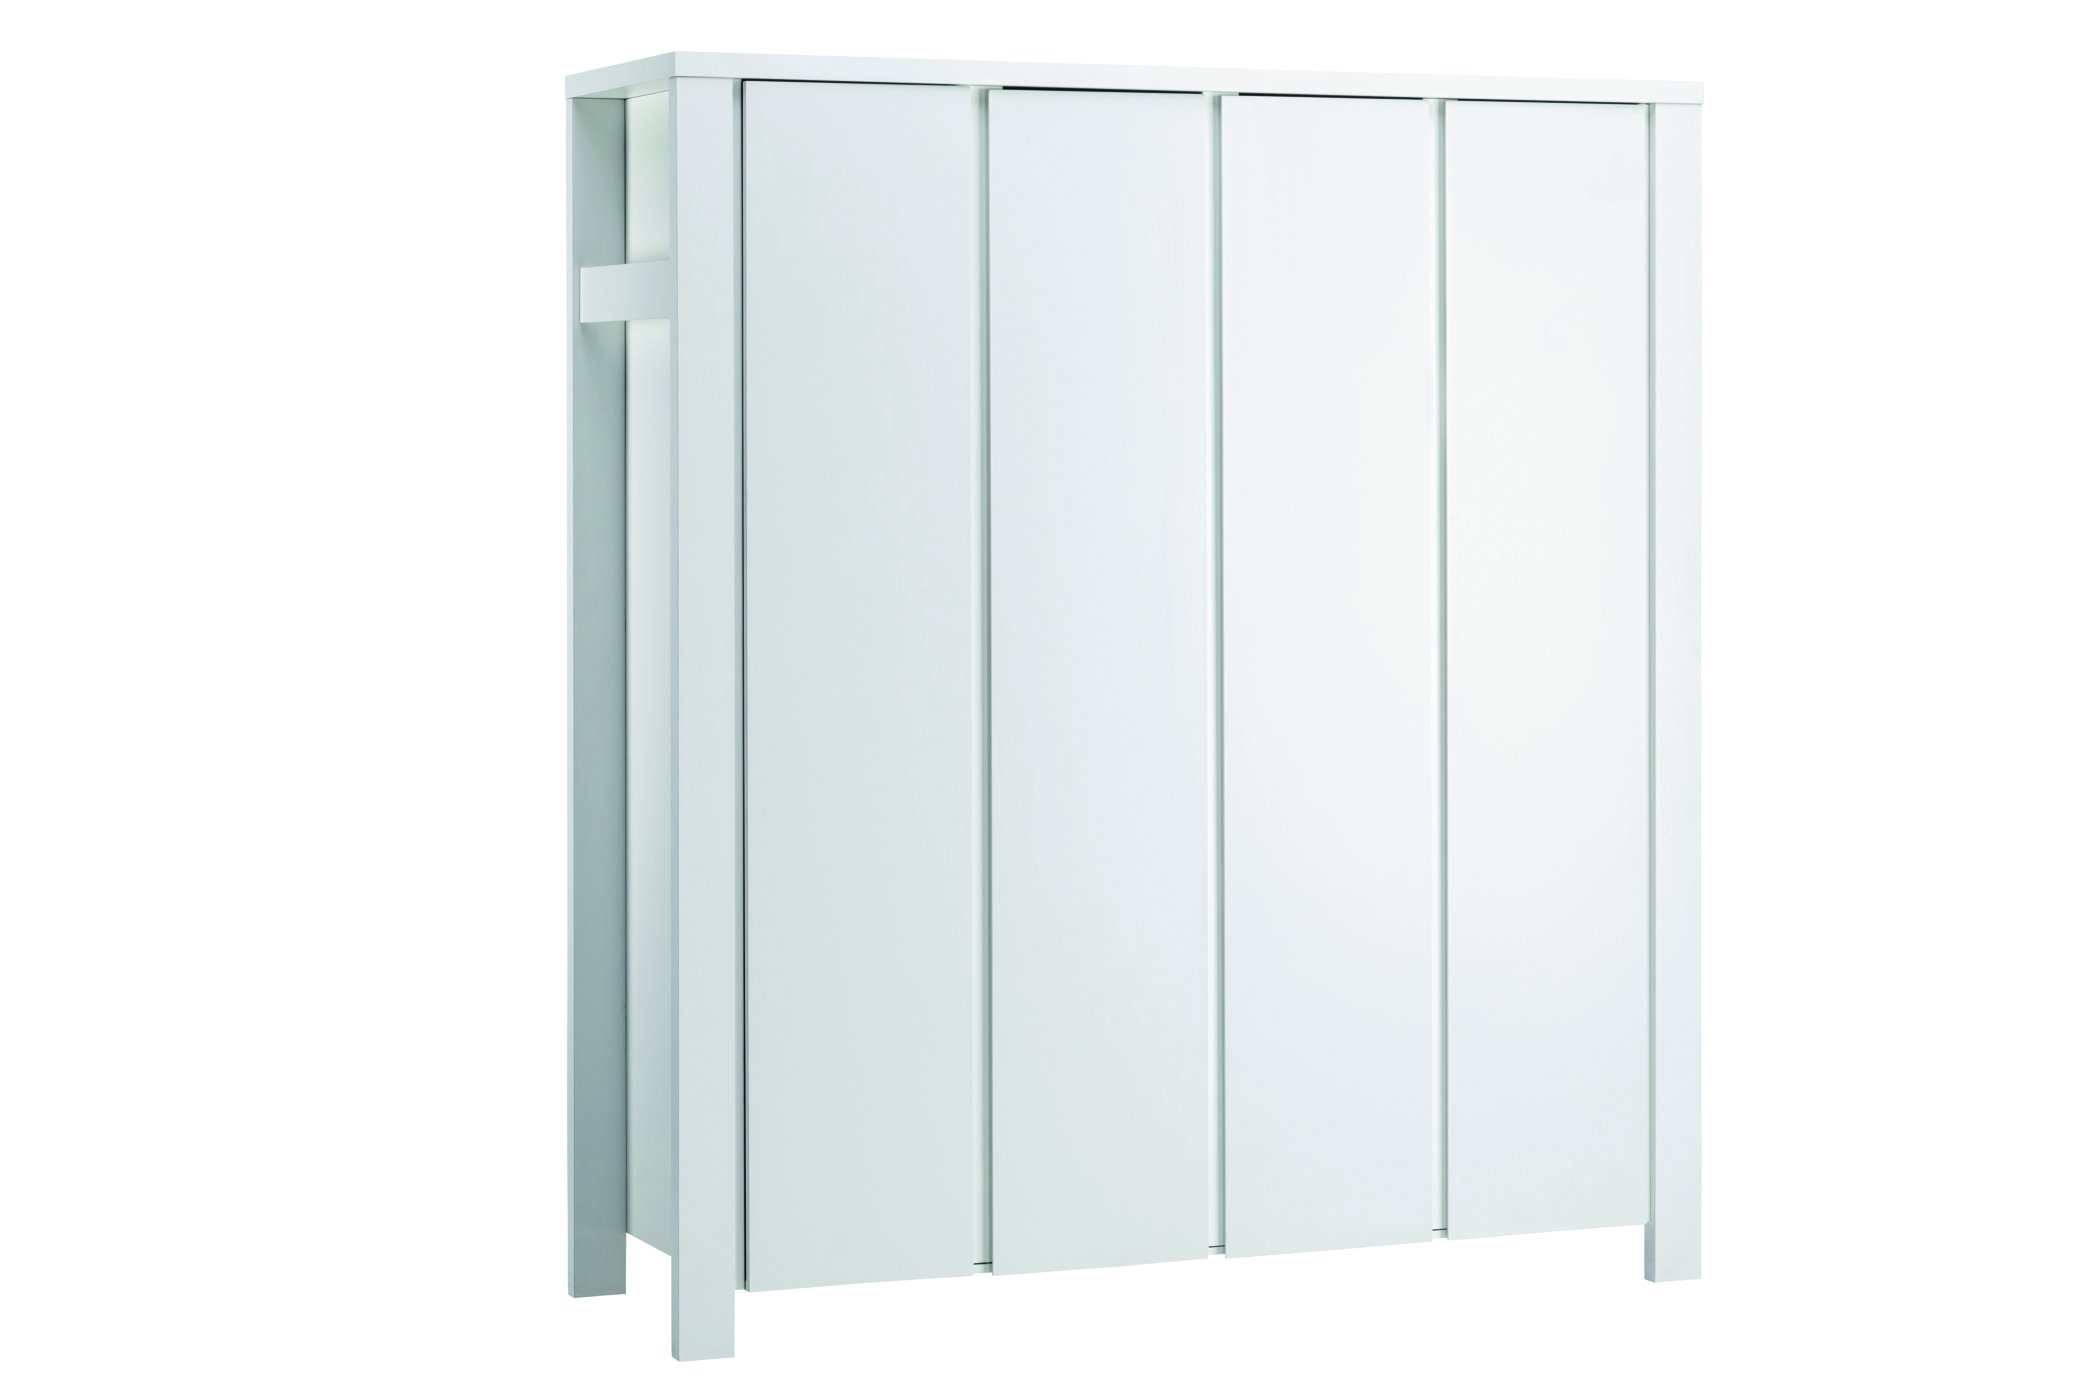 Schardt Milano 06 649 52 02 Cupboard with 4 Doors, White  GEORG SCHARDT KG - DROPSHIP